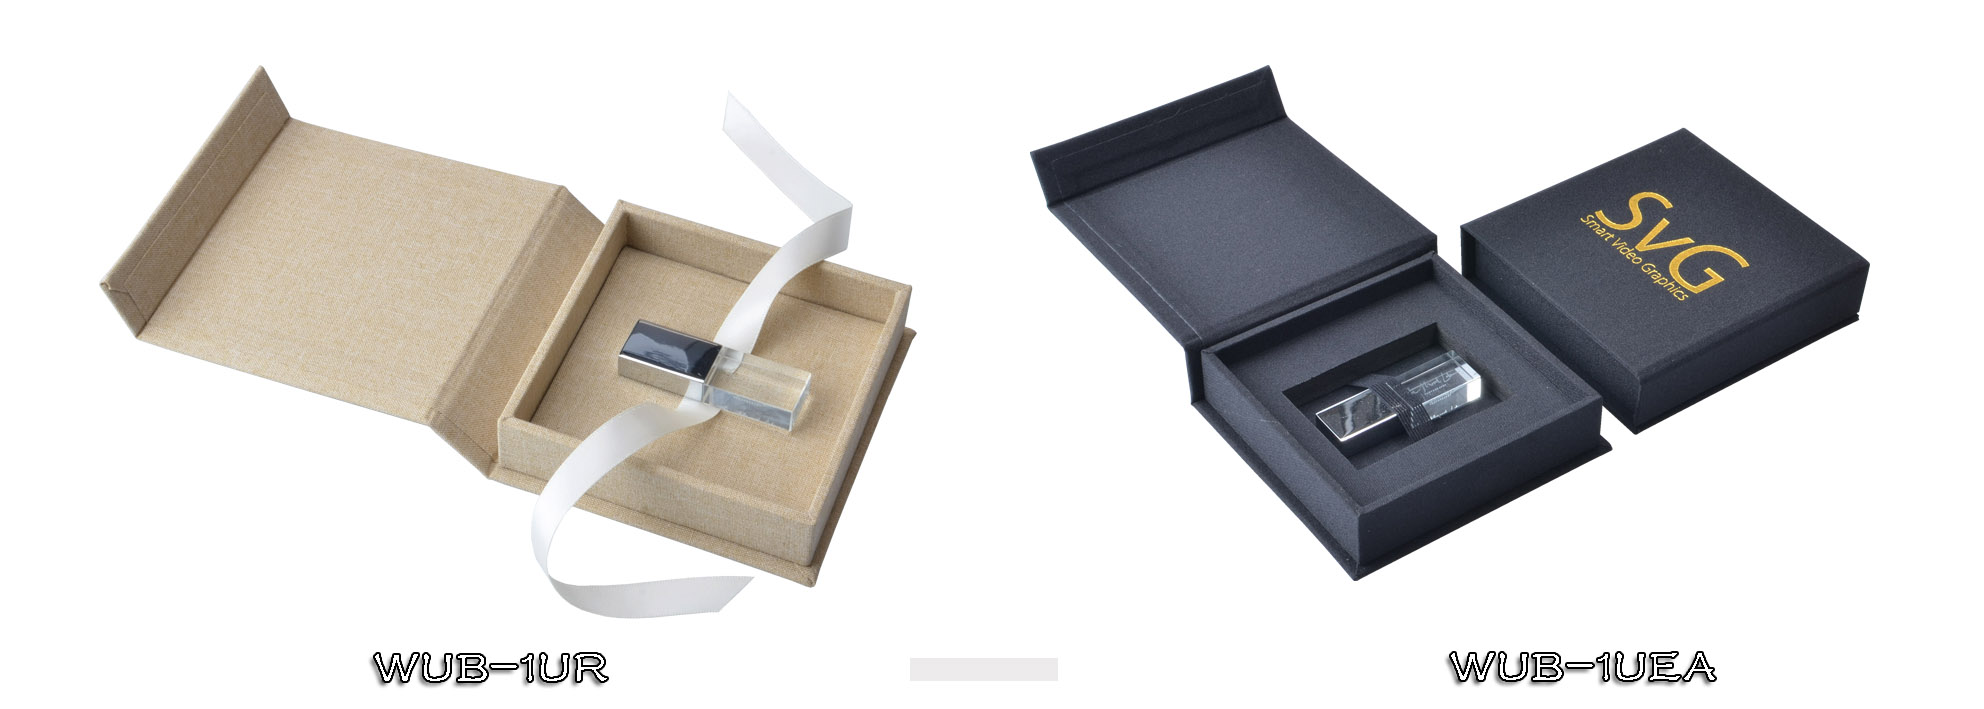 Fabric Linen USB Pen Drive Box Wedding